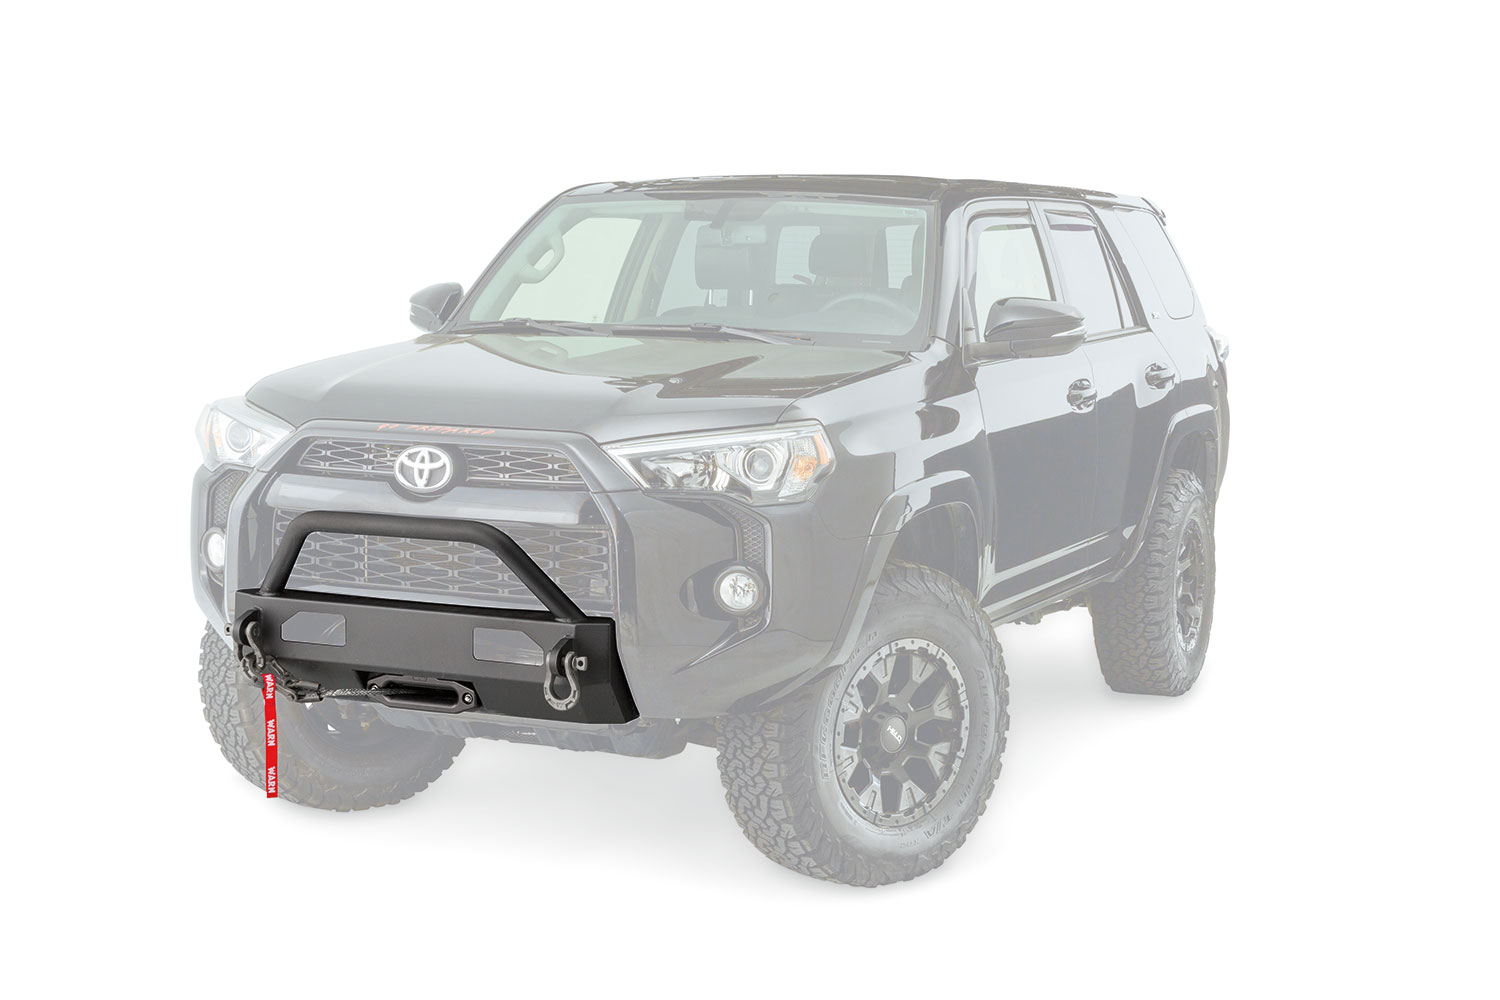 Warn SEMI HIDDEN KIT WINCH MOUNTING SYSTEM 4RUNNER 2014+